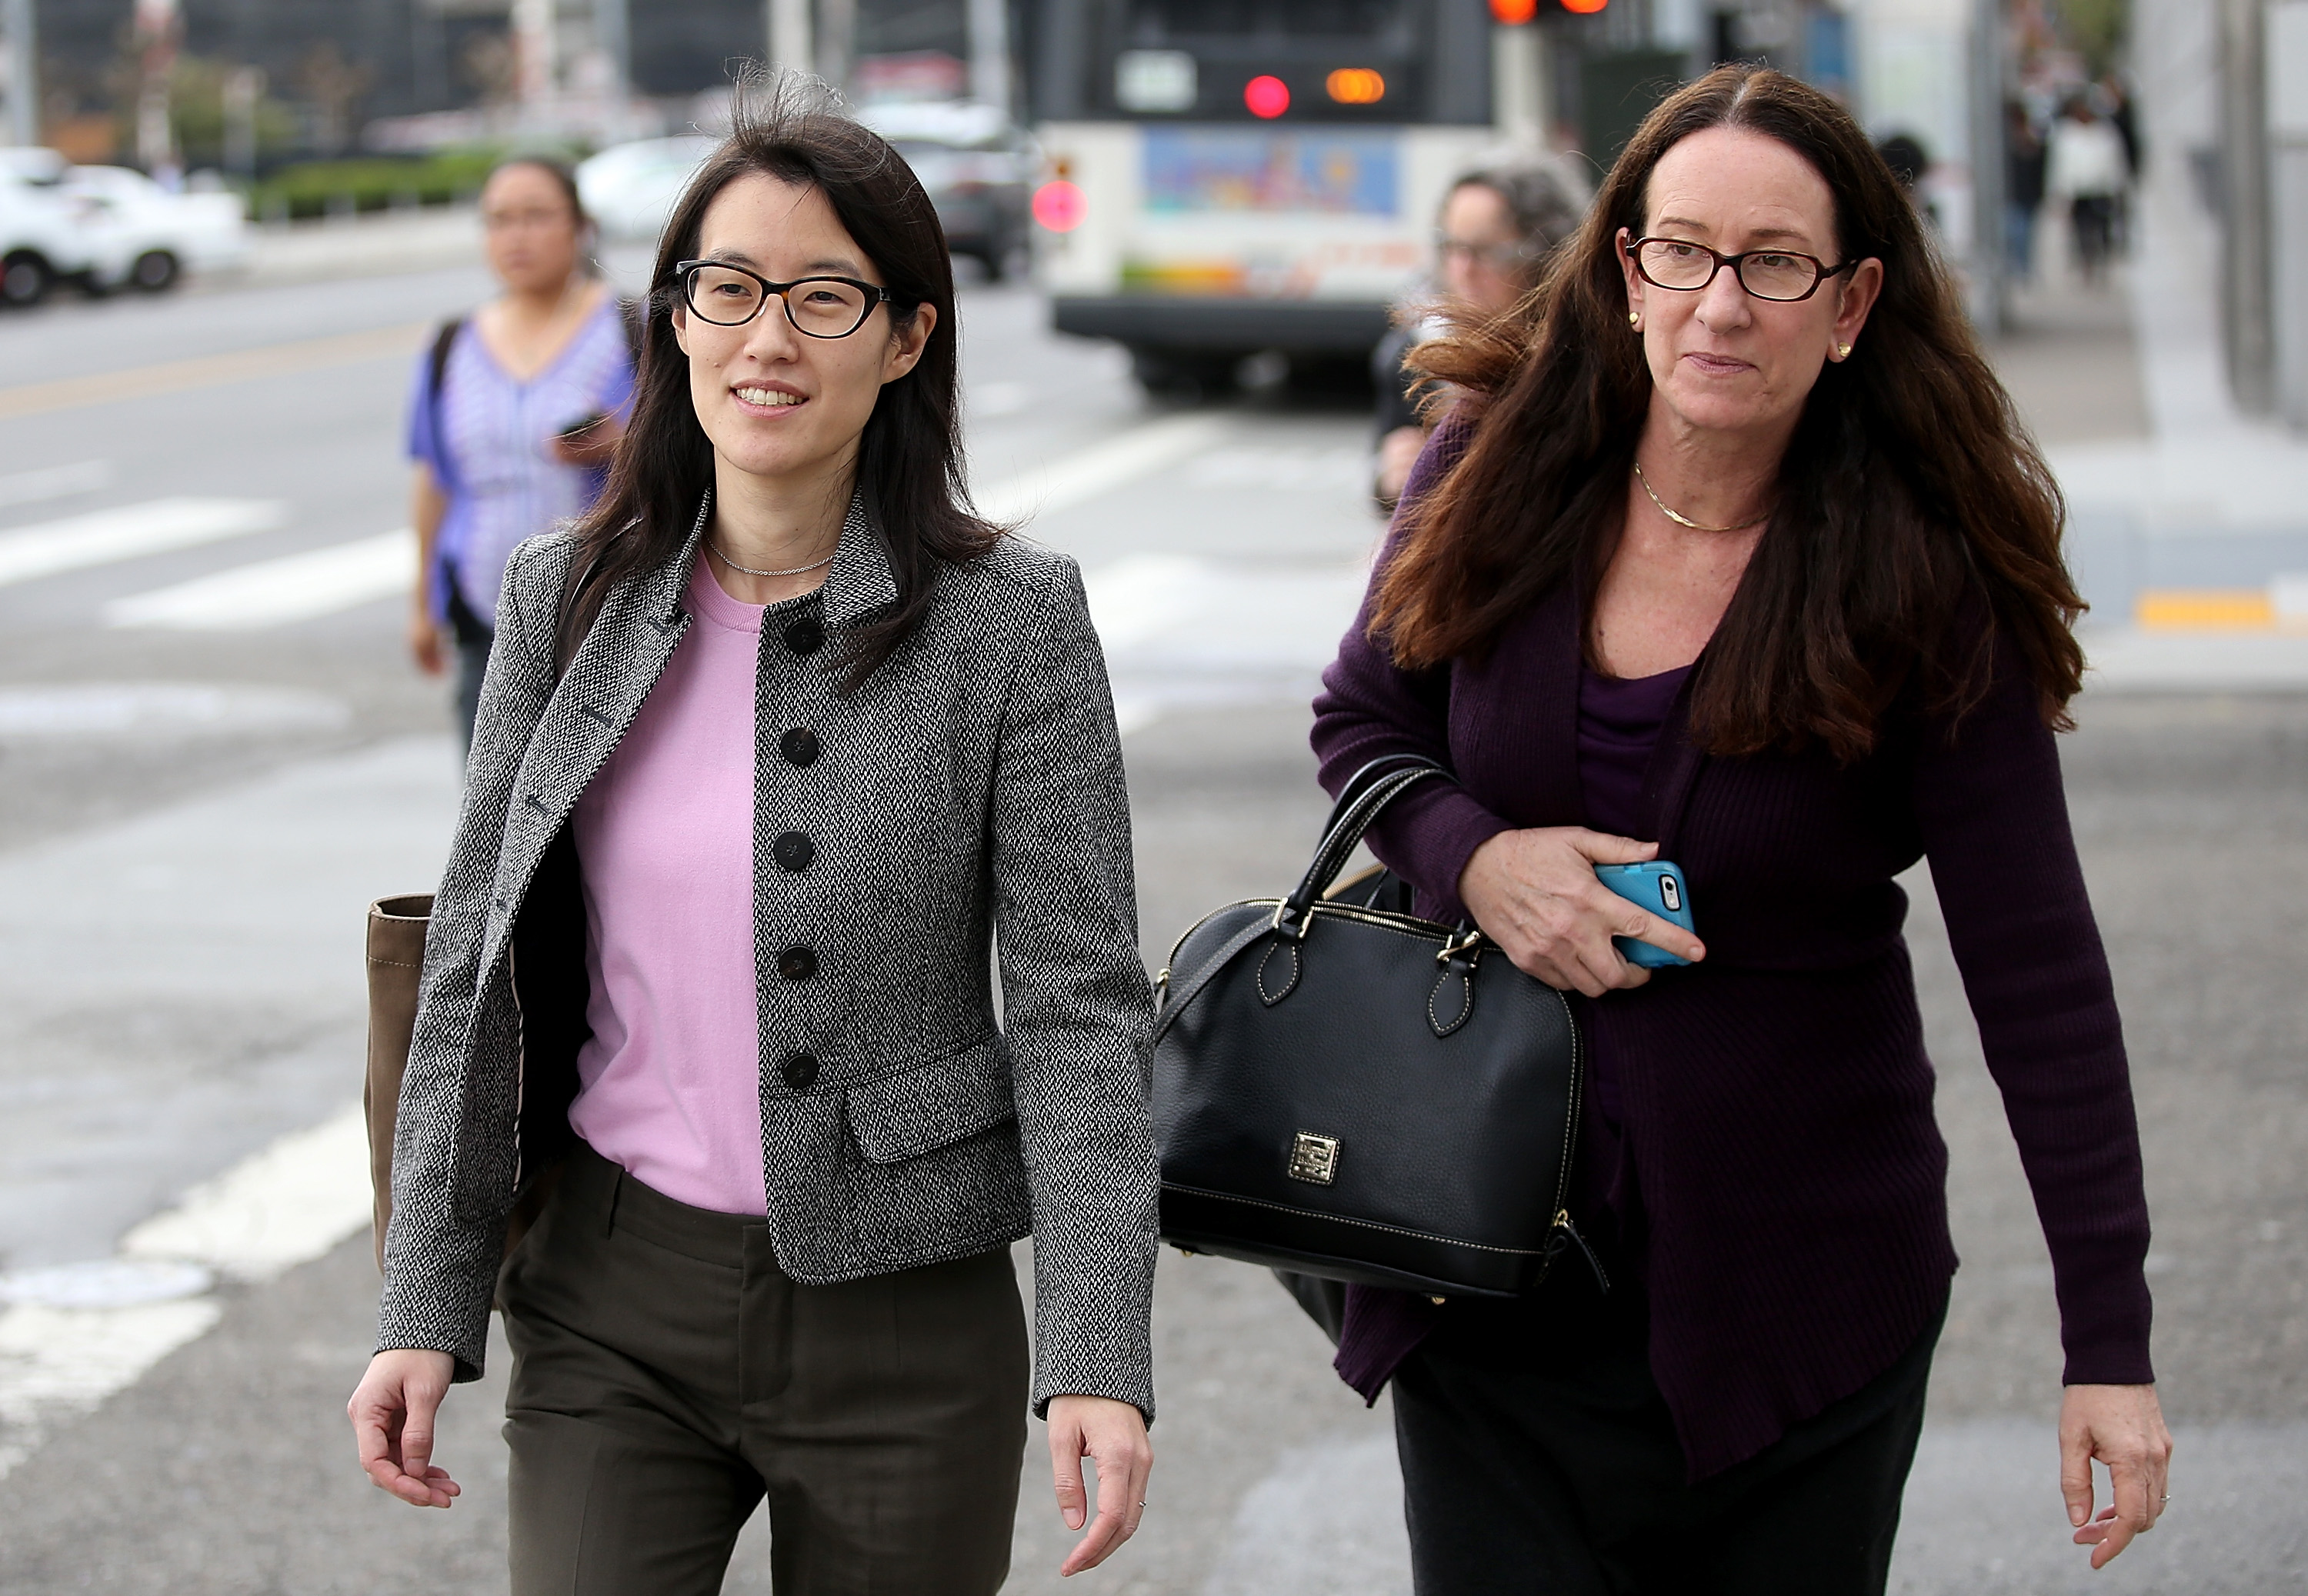 <p>SAN FRANCISCO, CA - MARCH 11:  Ellen Pao (L) leaves the Superior Court Civic Center Courthouse with her attorney Therese Lawless during a lunch break from her trial on March 11, 2015 in San Francisco, California. Pao, the interim CEO of Reddit, is suing her former employer, Silicon Valley venture capital firm Kleiner Perkins Caulfield and Byers, for $16 million alleging she was sexually harassed by male officials.  (Photo by Justin Sullivan/Getty Images)</p>